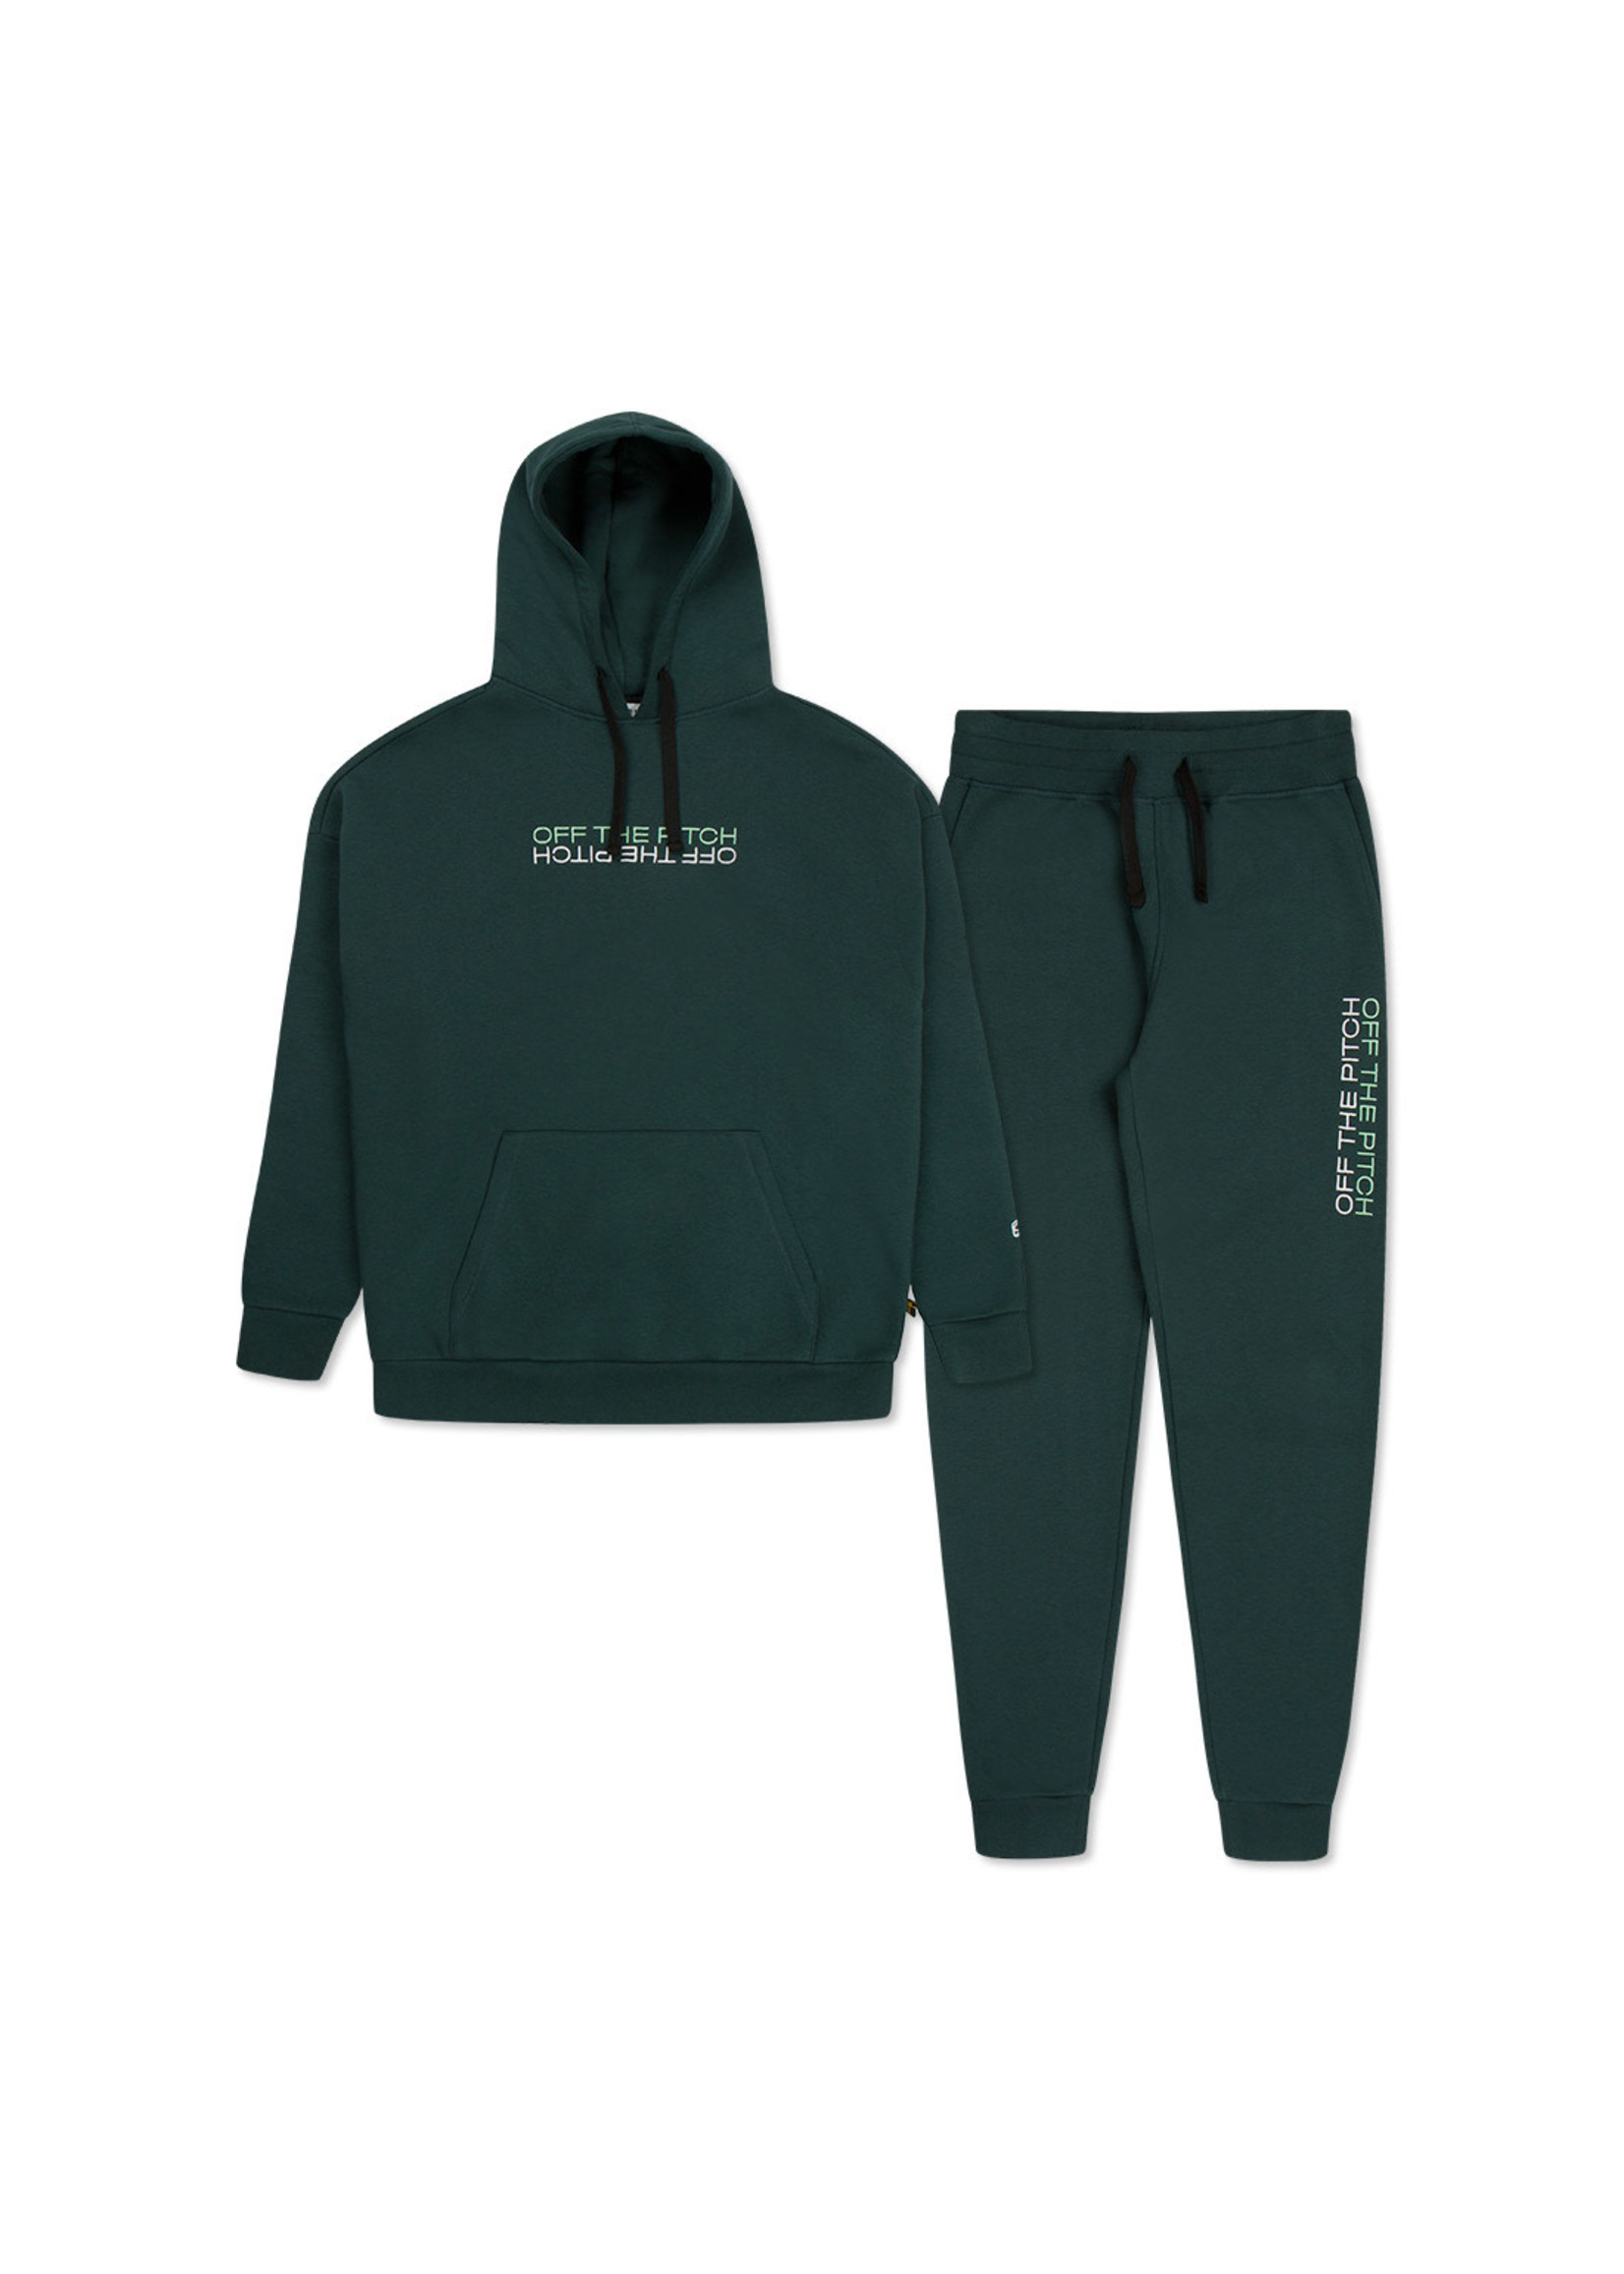 OFF THE PITCH Off The Pitch The Soul Suit - Dark Green